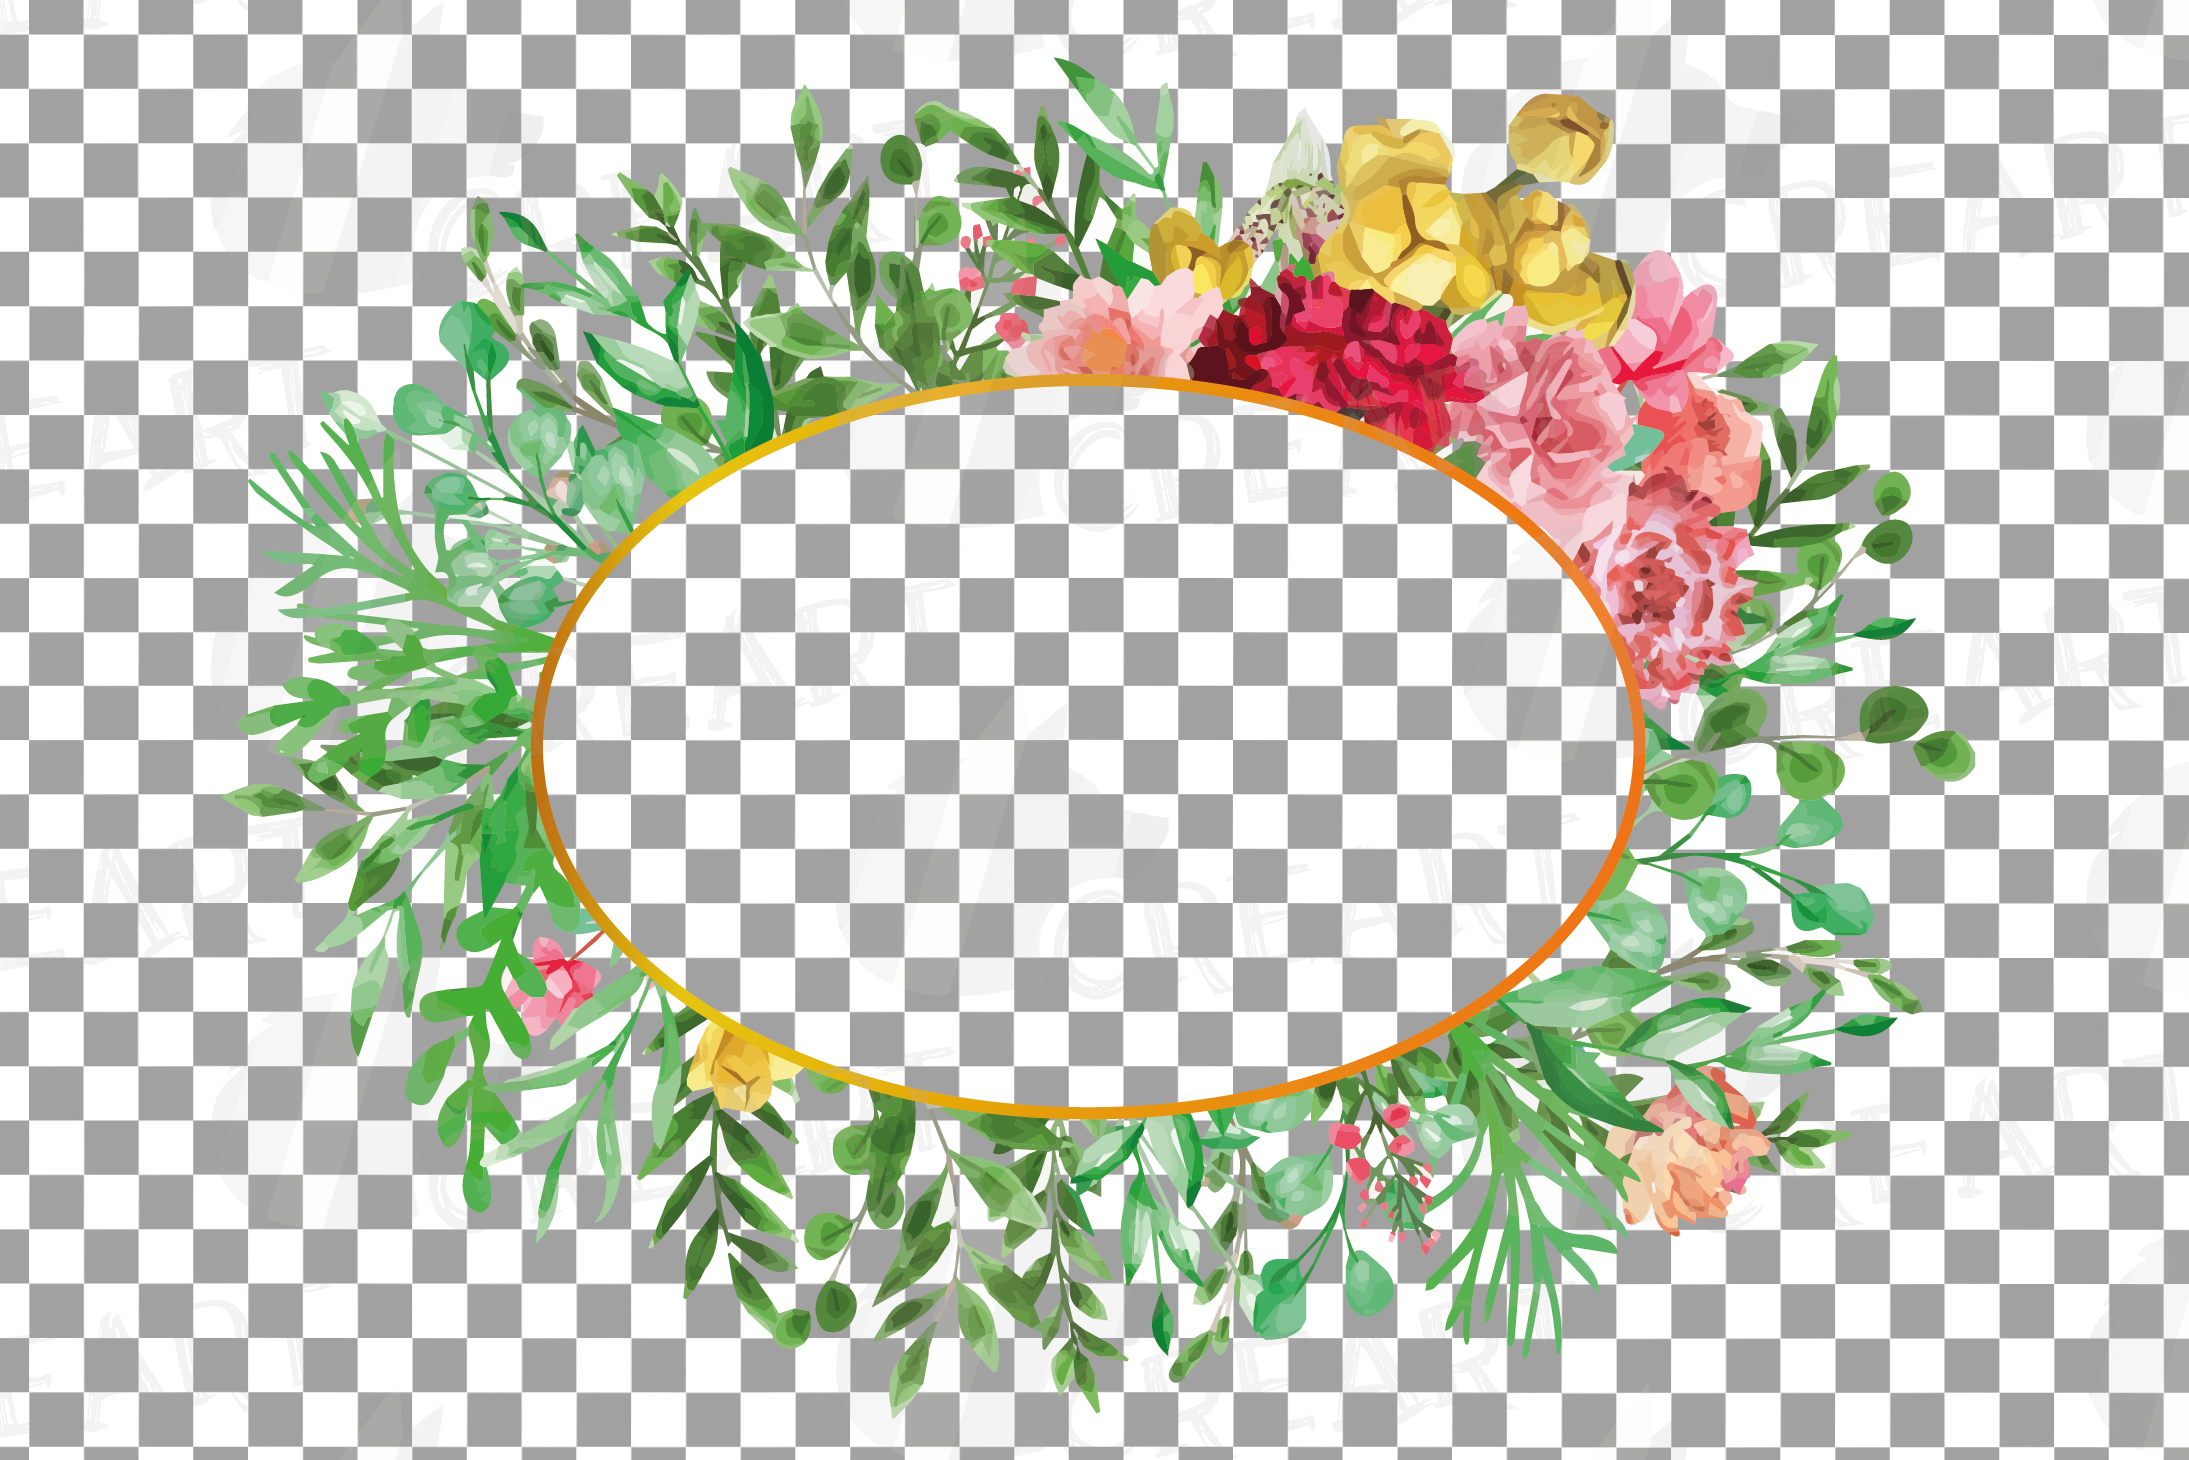 Watercolor floral floral frames and borders clip art pack example image 16